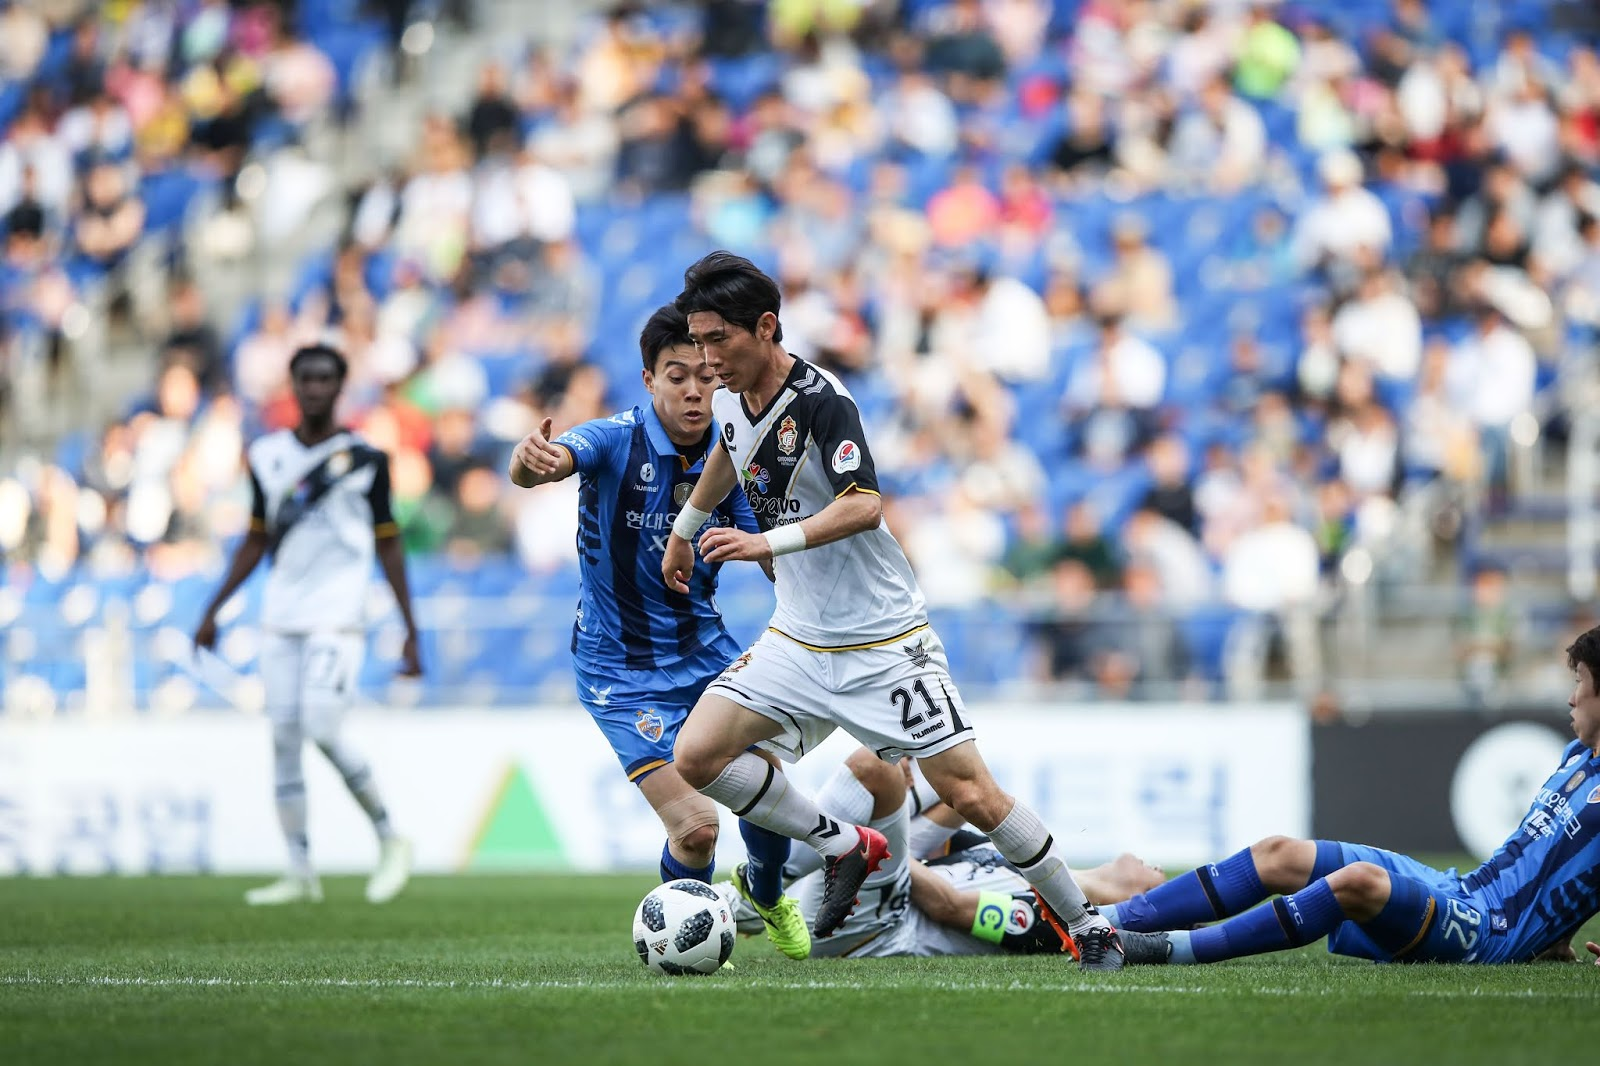 K League 1 Preview: Ulsan Hyundai vs Gyeongnam FC